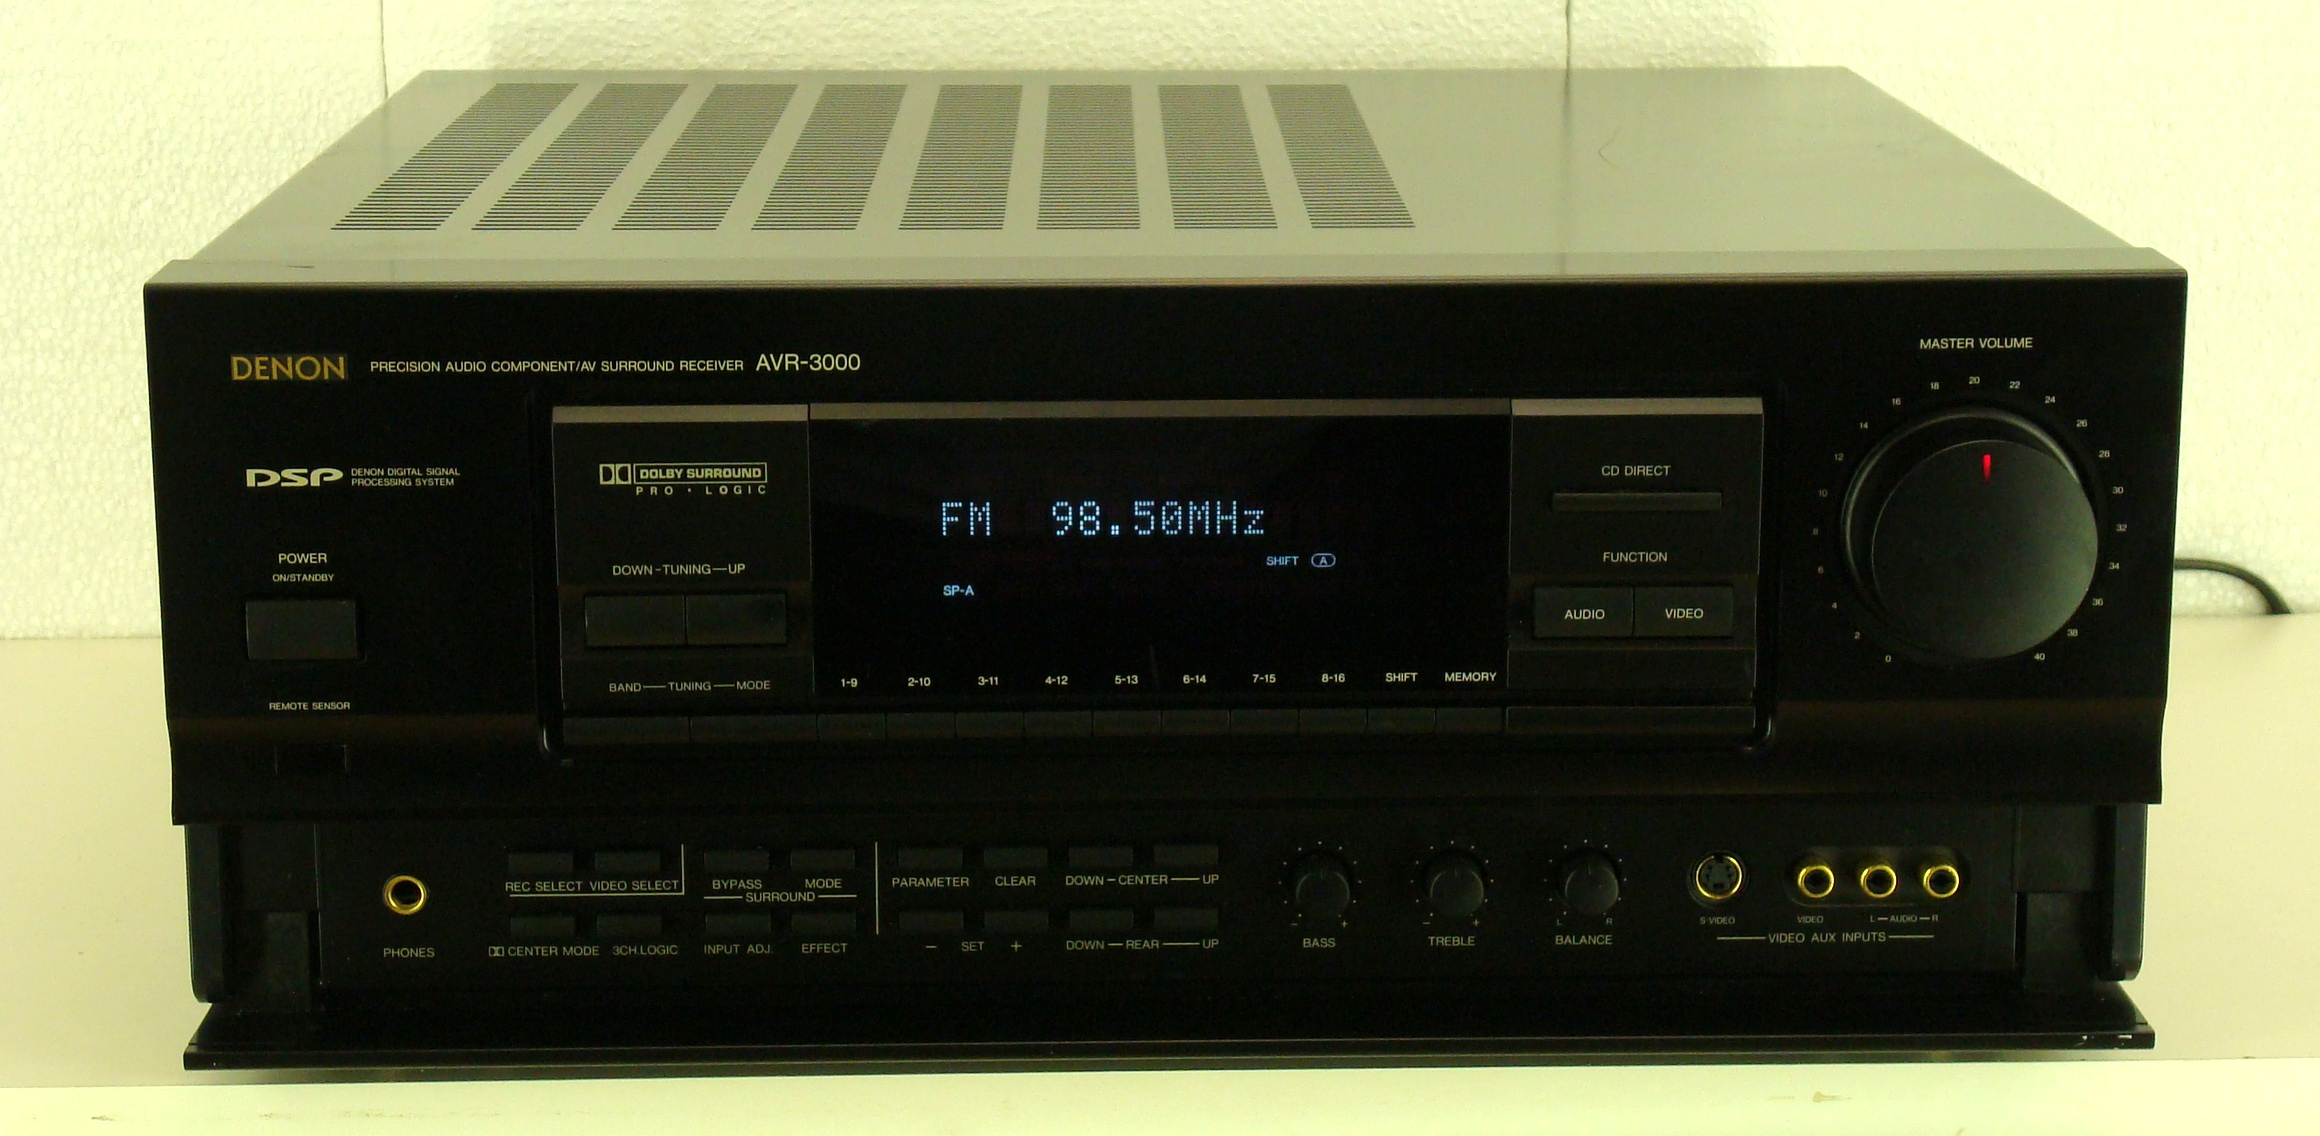 play it again sam receivers surround sound receivers rh playitagainsam com denon avr 3000 user manual denon avr 3000 specs